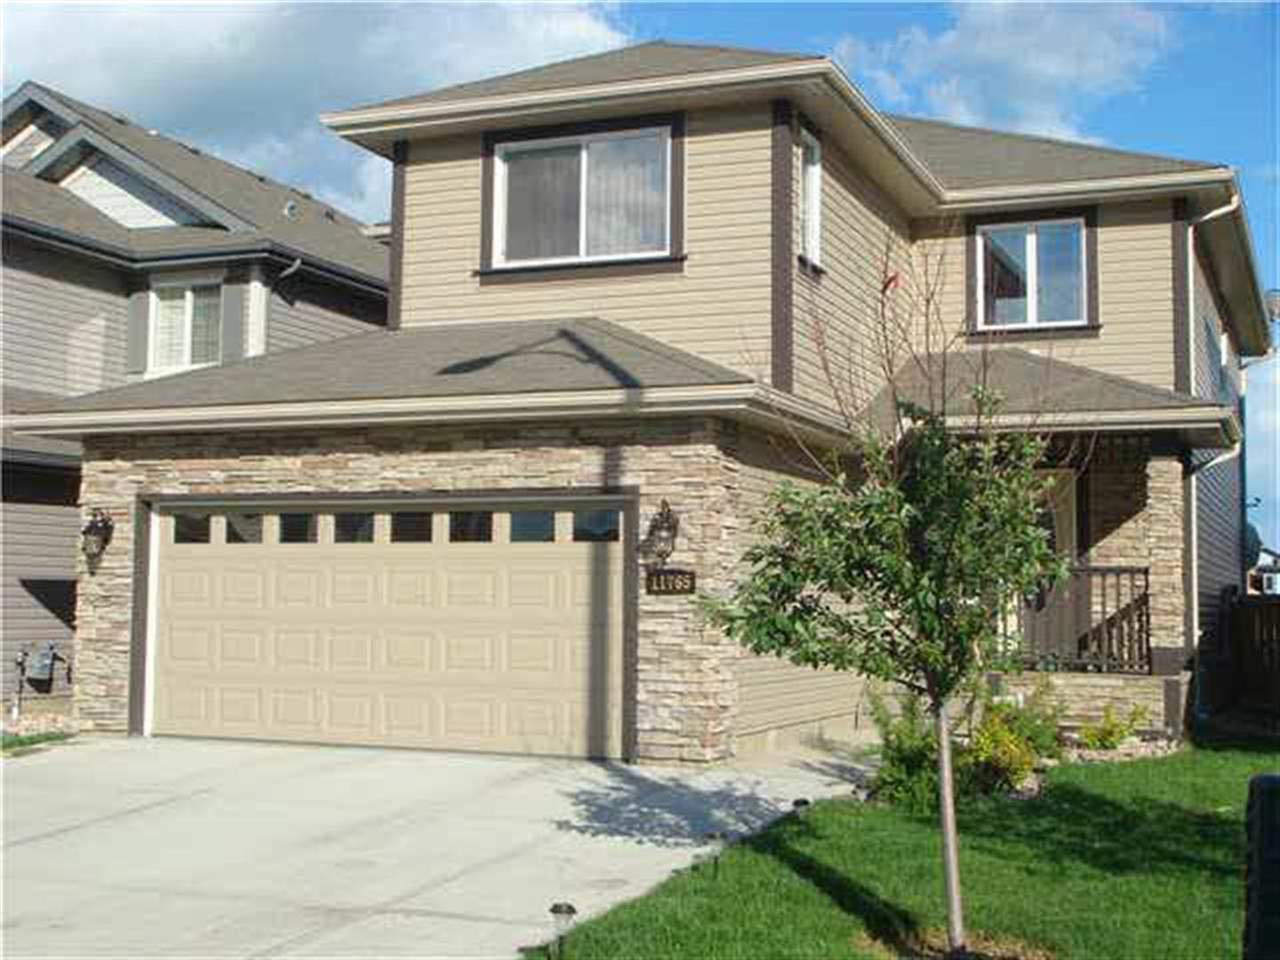 Main Photo: 11765 13A Avenue in Edmonton: Zone 55 House for sale : MLS®# E4187825